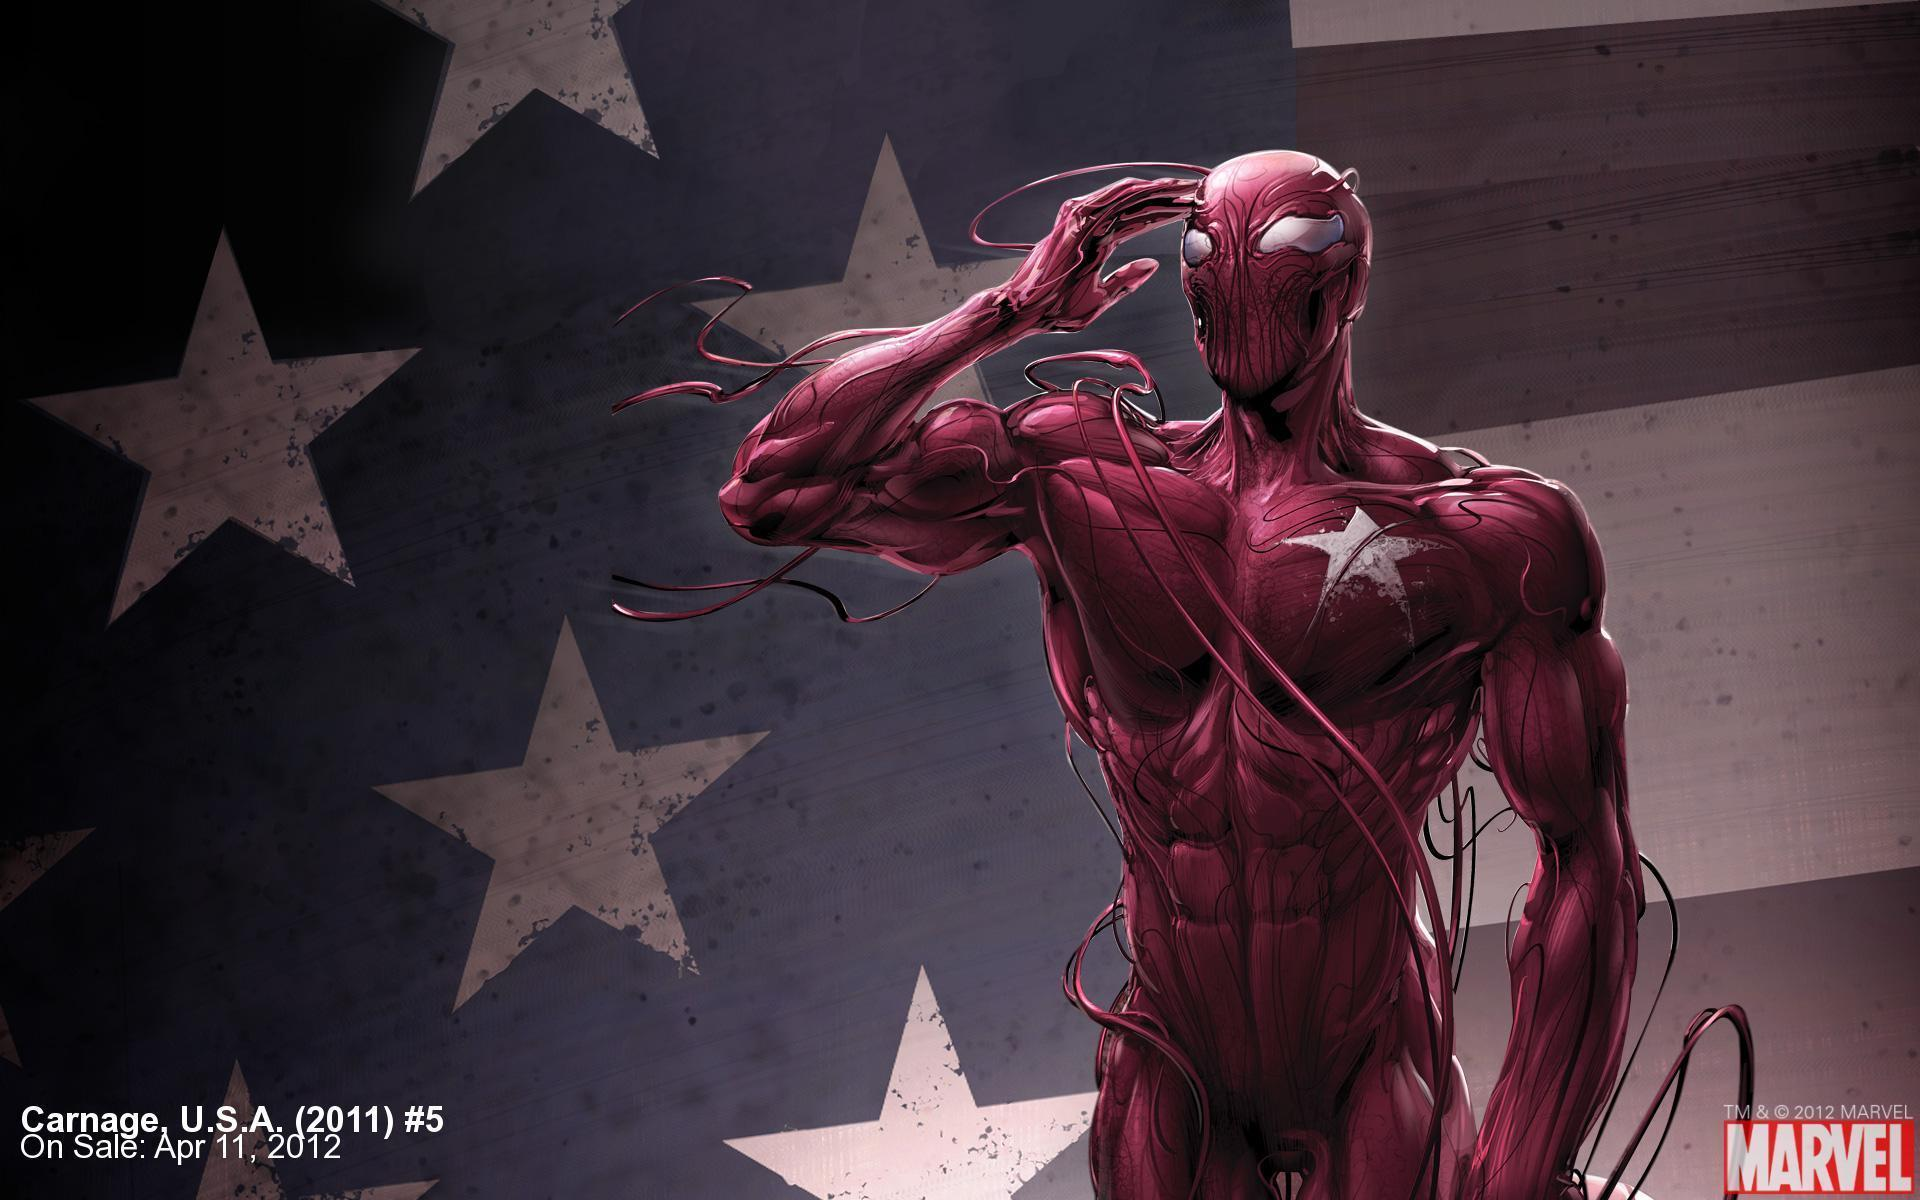 Wallpapers For > Marvel Carnage Wallpapers